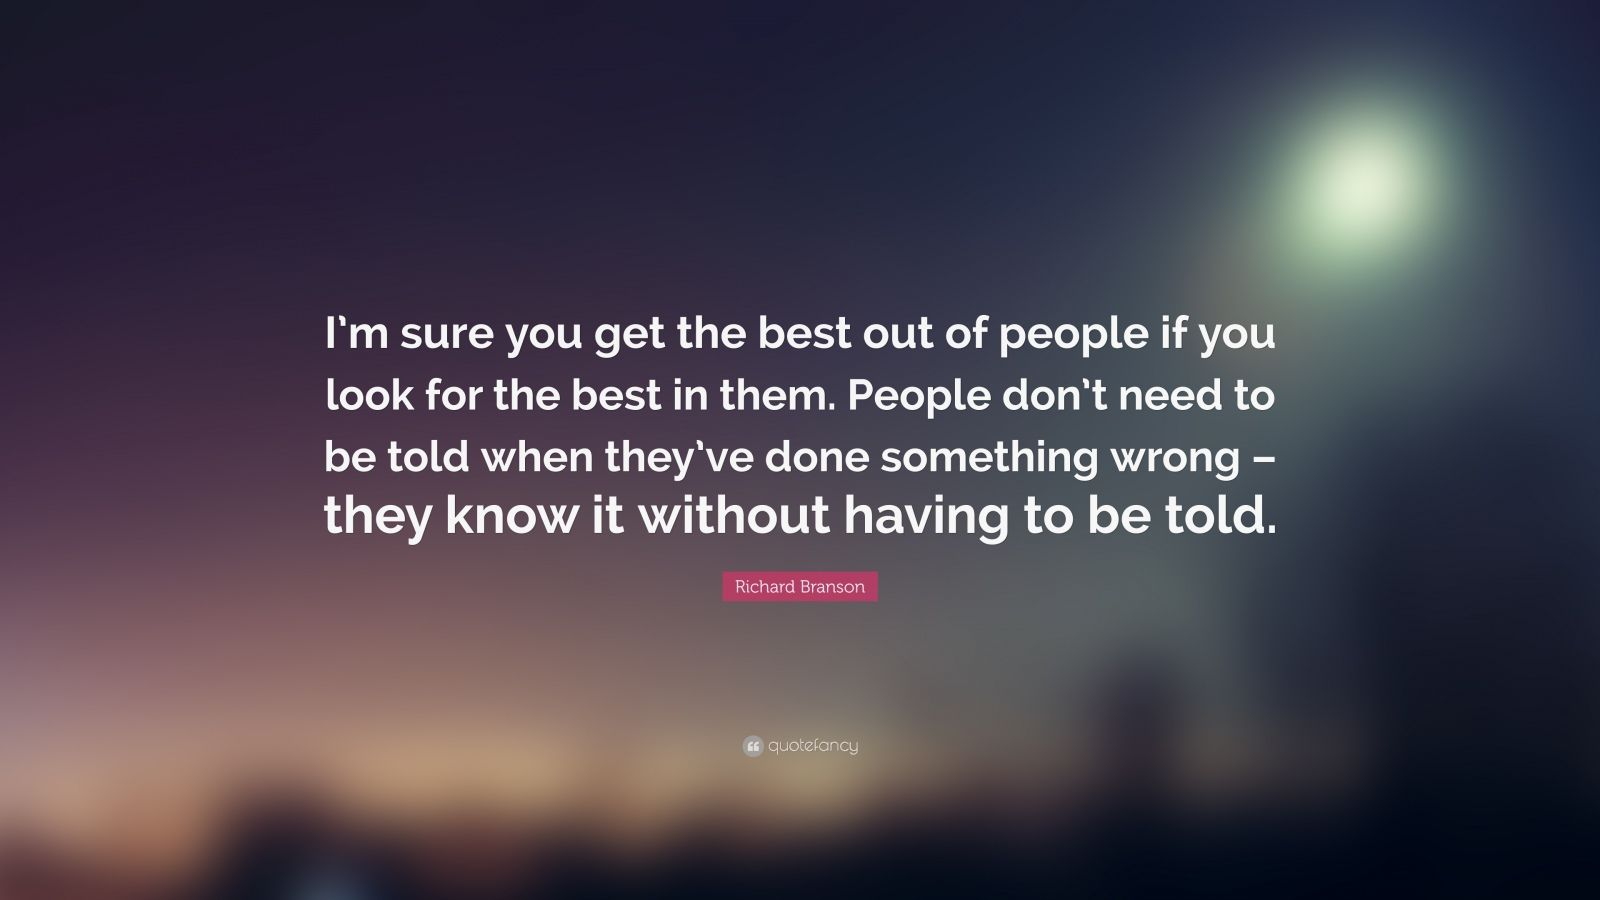 "Richard Branson Quote: ""I'm sure you get the best out of people if you look for the best in them. People don't need to be told when they've done something wrong – they know it without having to be told."""